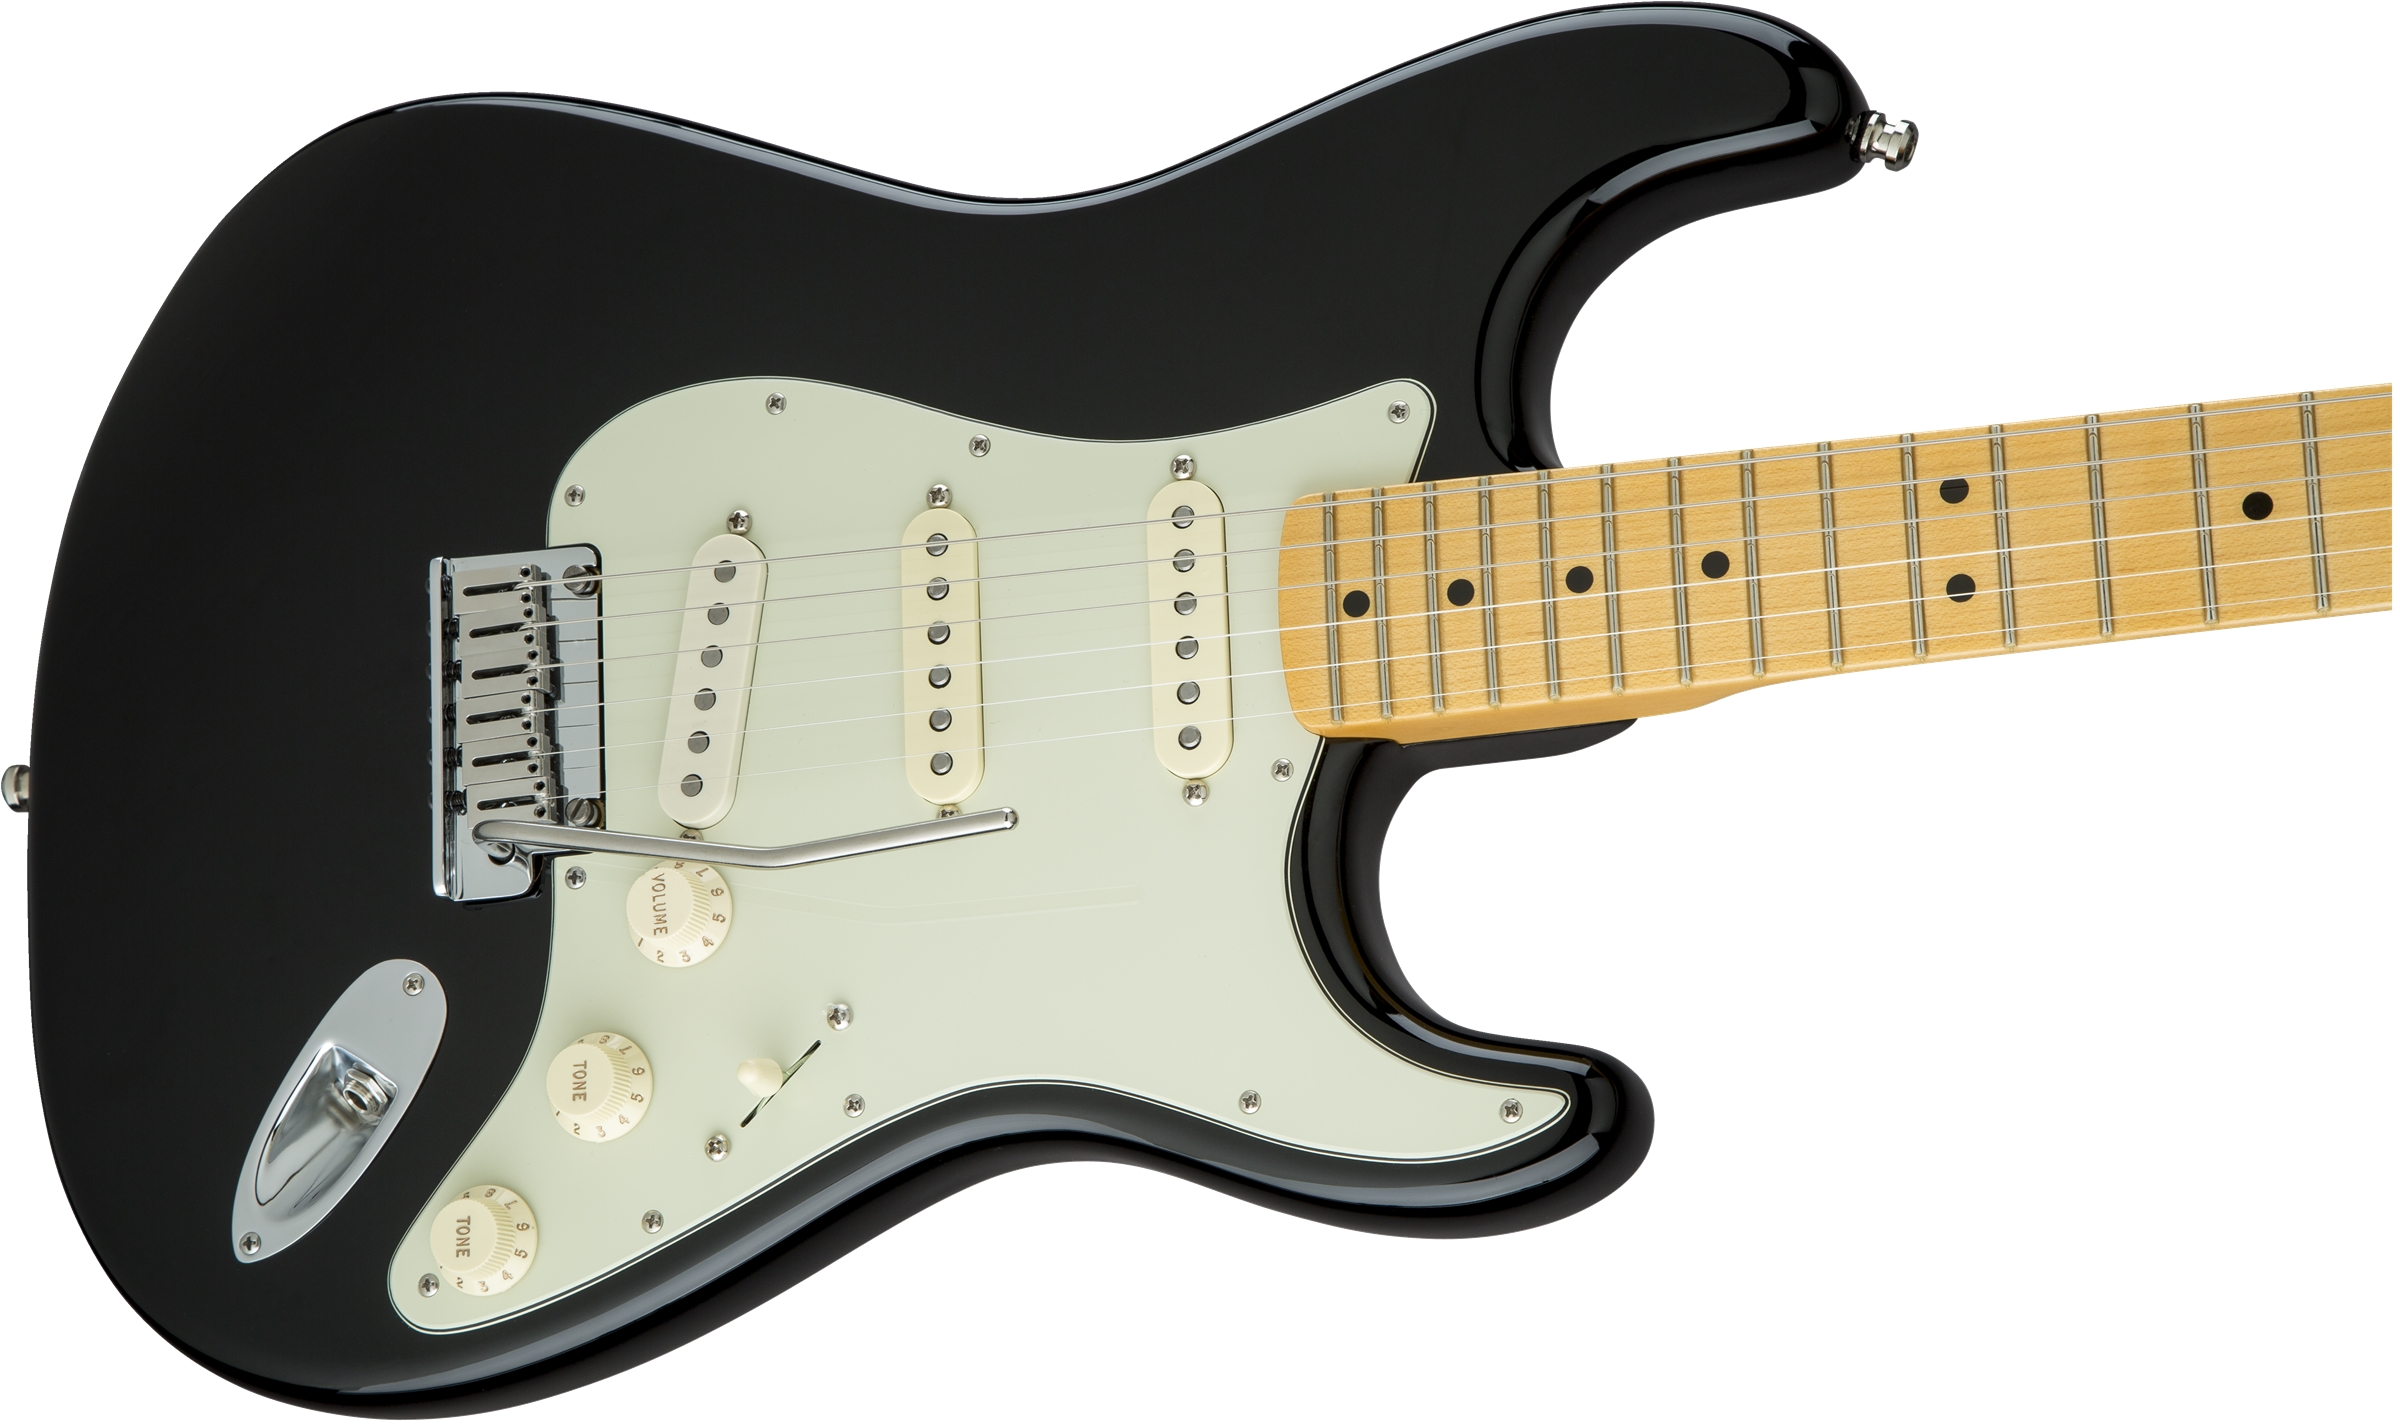 Fantastic Reznor Wiring Diagram Small Bulldog Security Remote Starter With Keyless Entry Solid Alarm Wiring 3 Humbuckers Youthful Bulldog Security Keyless Entry ColouredRemote Start Diagram Fender The Edge Strat®, Maple Fingerboard, Black